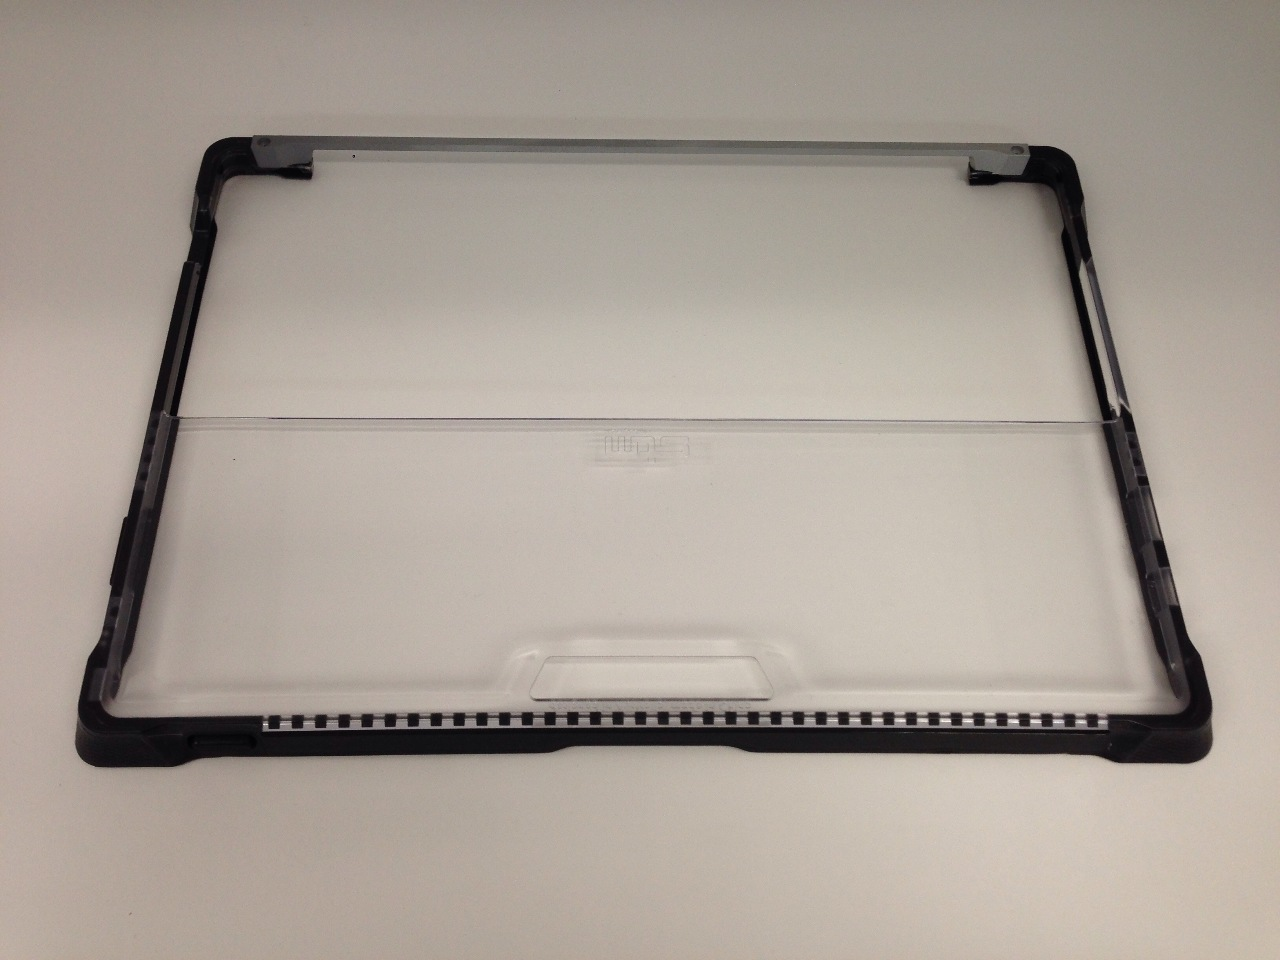 Stm Dux Rugged Protective Case For Microsoft Surface Pro 3